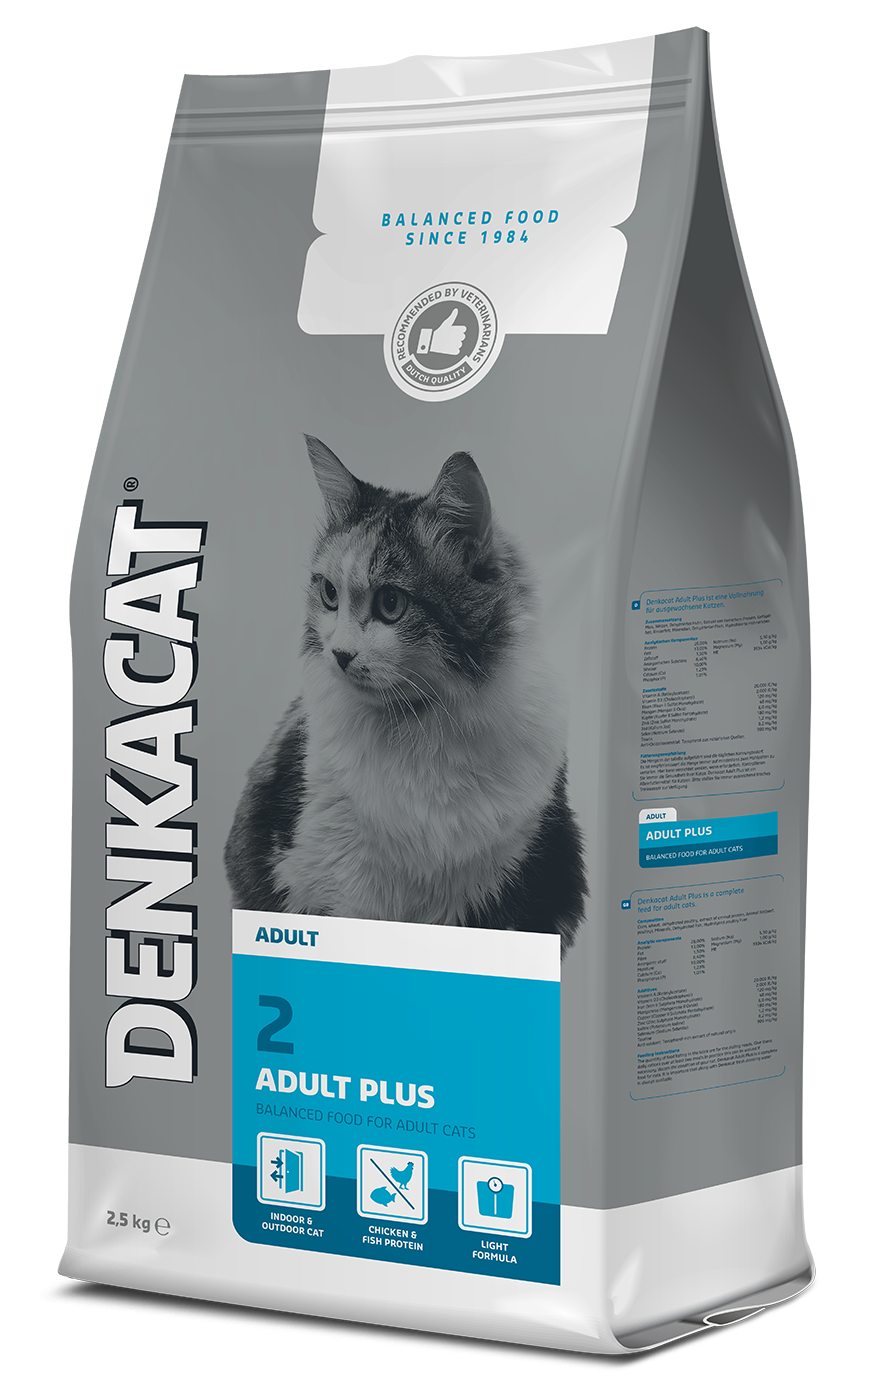 Denkacat Adult Plus - 4 x 2,5 kg - Oscar and Kitty